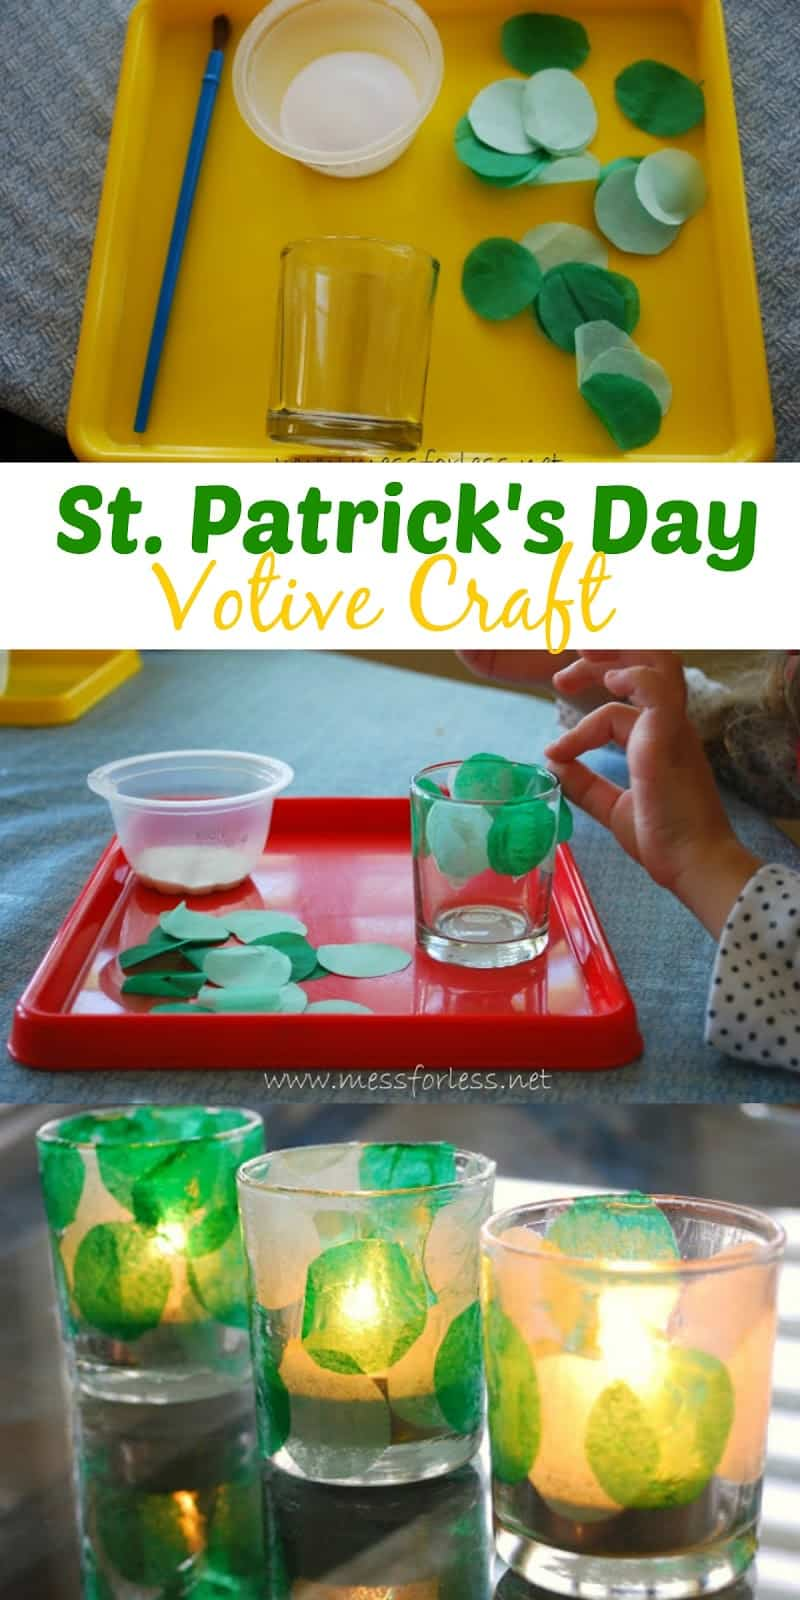 Make a St. Patrick's Day Votive with kids. This fun craft project will allow kids to create a work of art you can display in your home. Such a fun St. Patrick's Day activity!